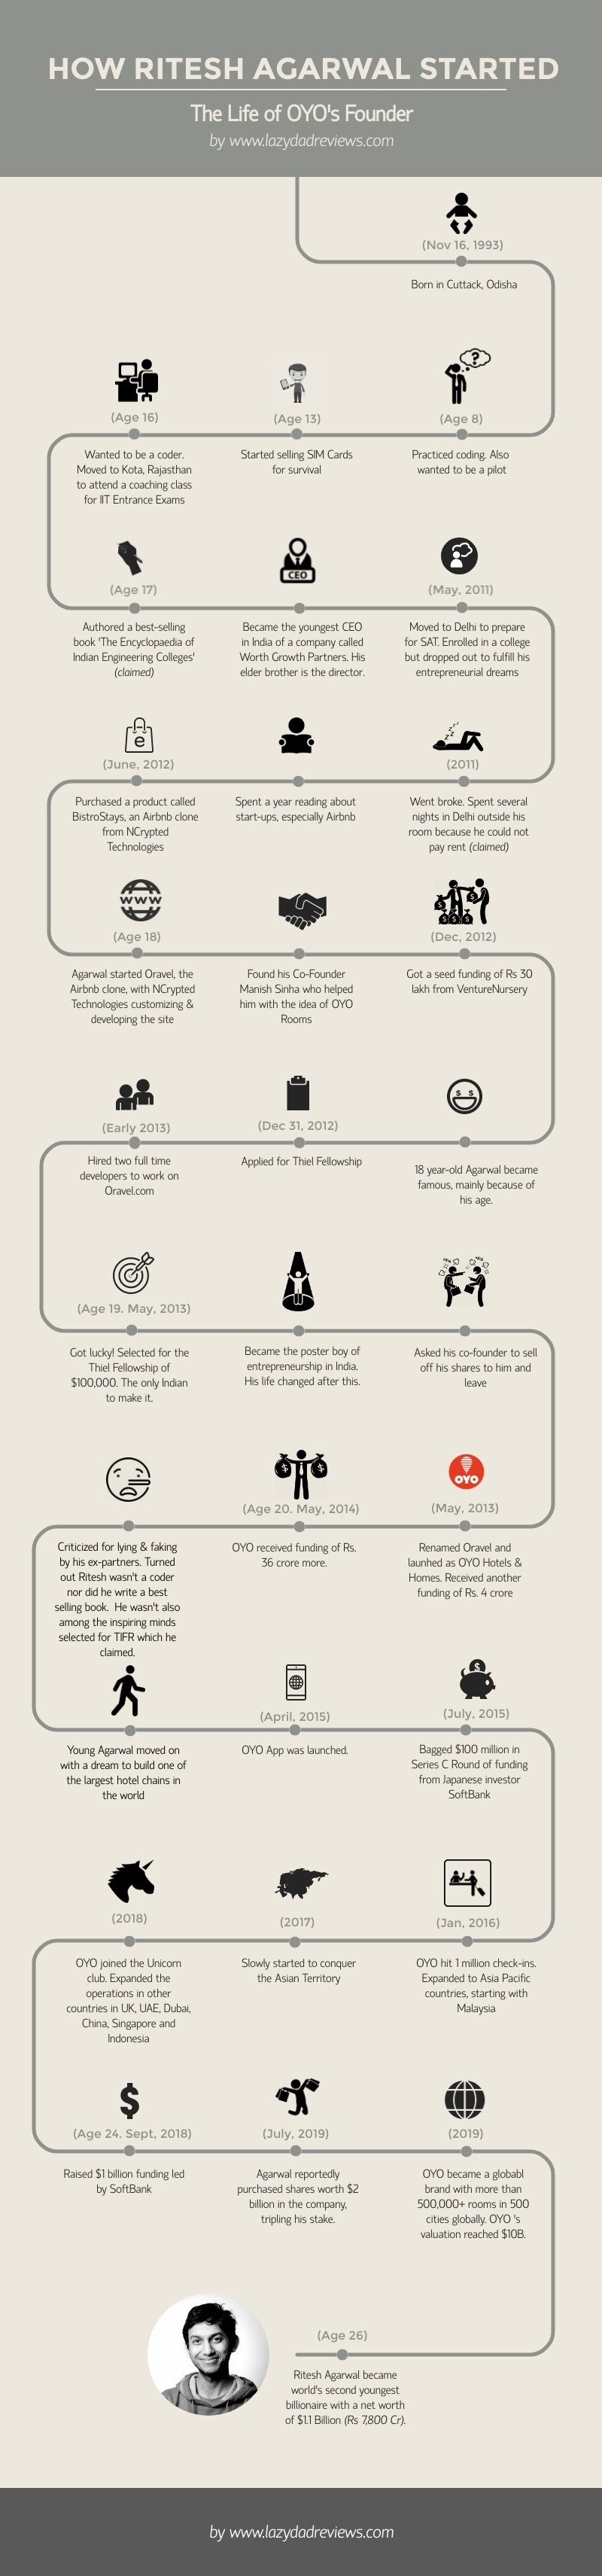 The Ritesh Agarwal Started The Life Of OYO Founder #Infographic